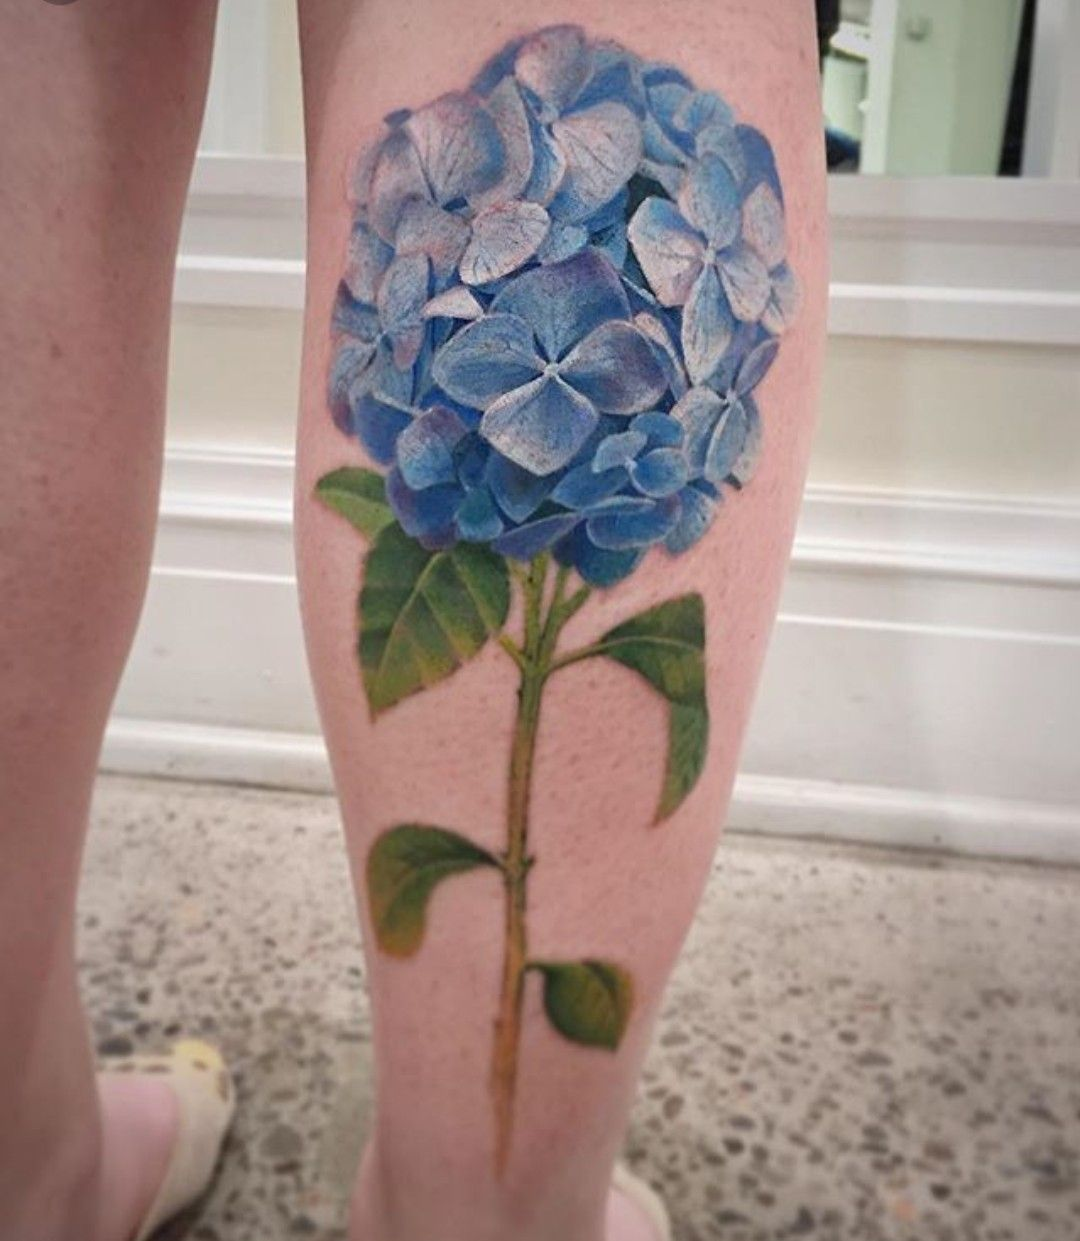 Hydrangea Tattoo Hydrangea Tattoo Realistic Flower Tattoo Beautiful Flower Tattoos